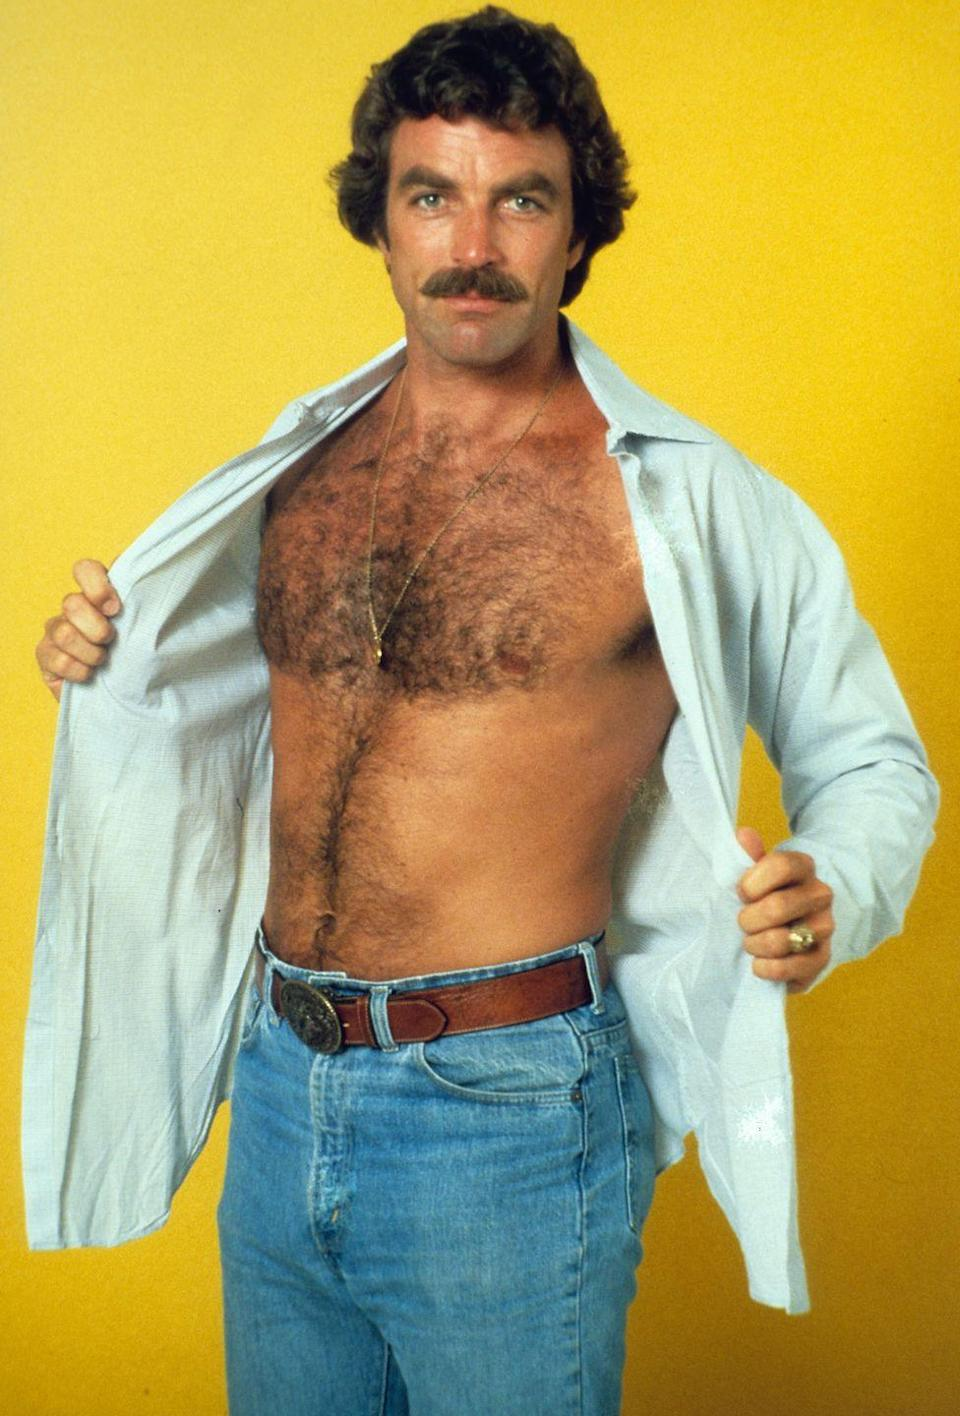 <p>He is known for his starring role in the '80s TV series <em>Magnum, P.I.</em></p>